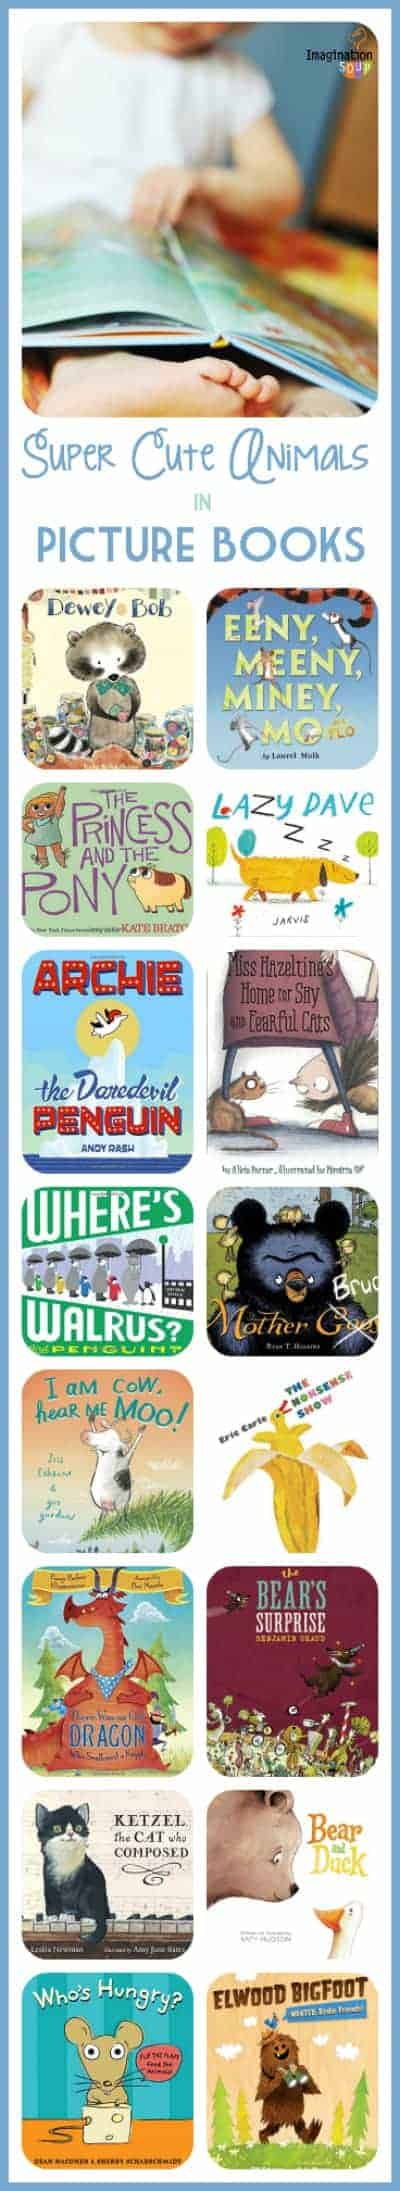 totally cute animal characters in picture books